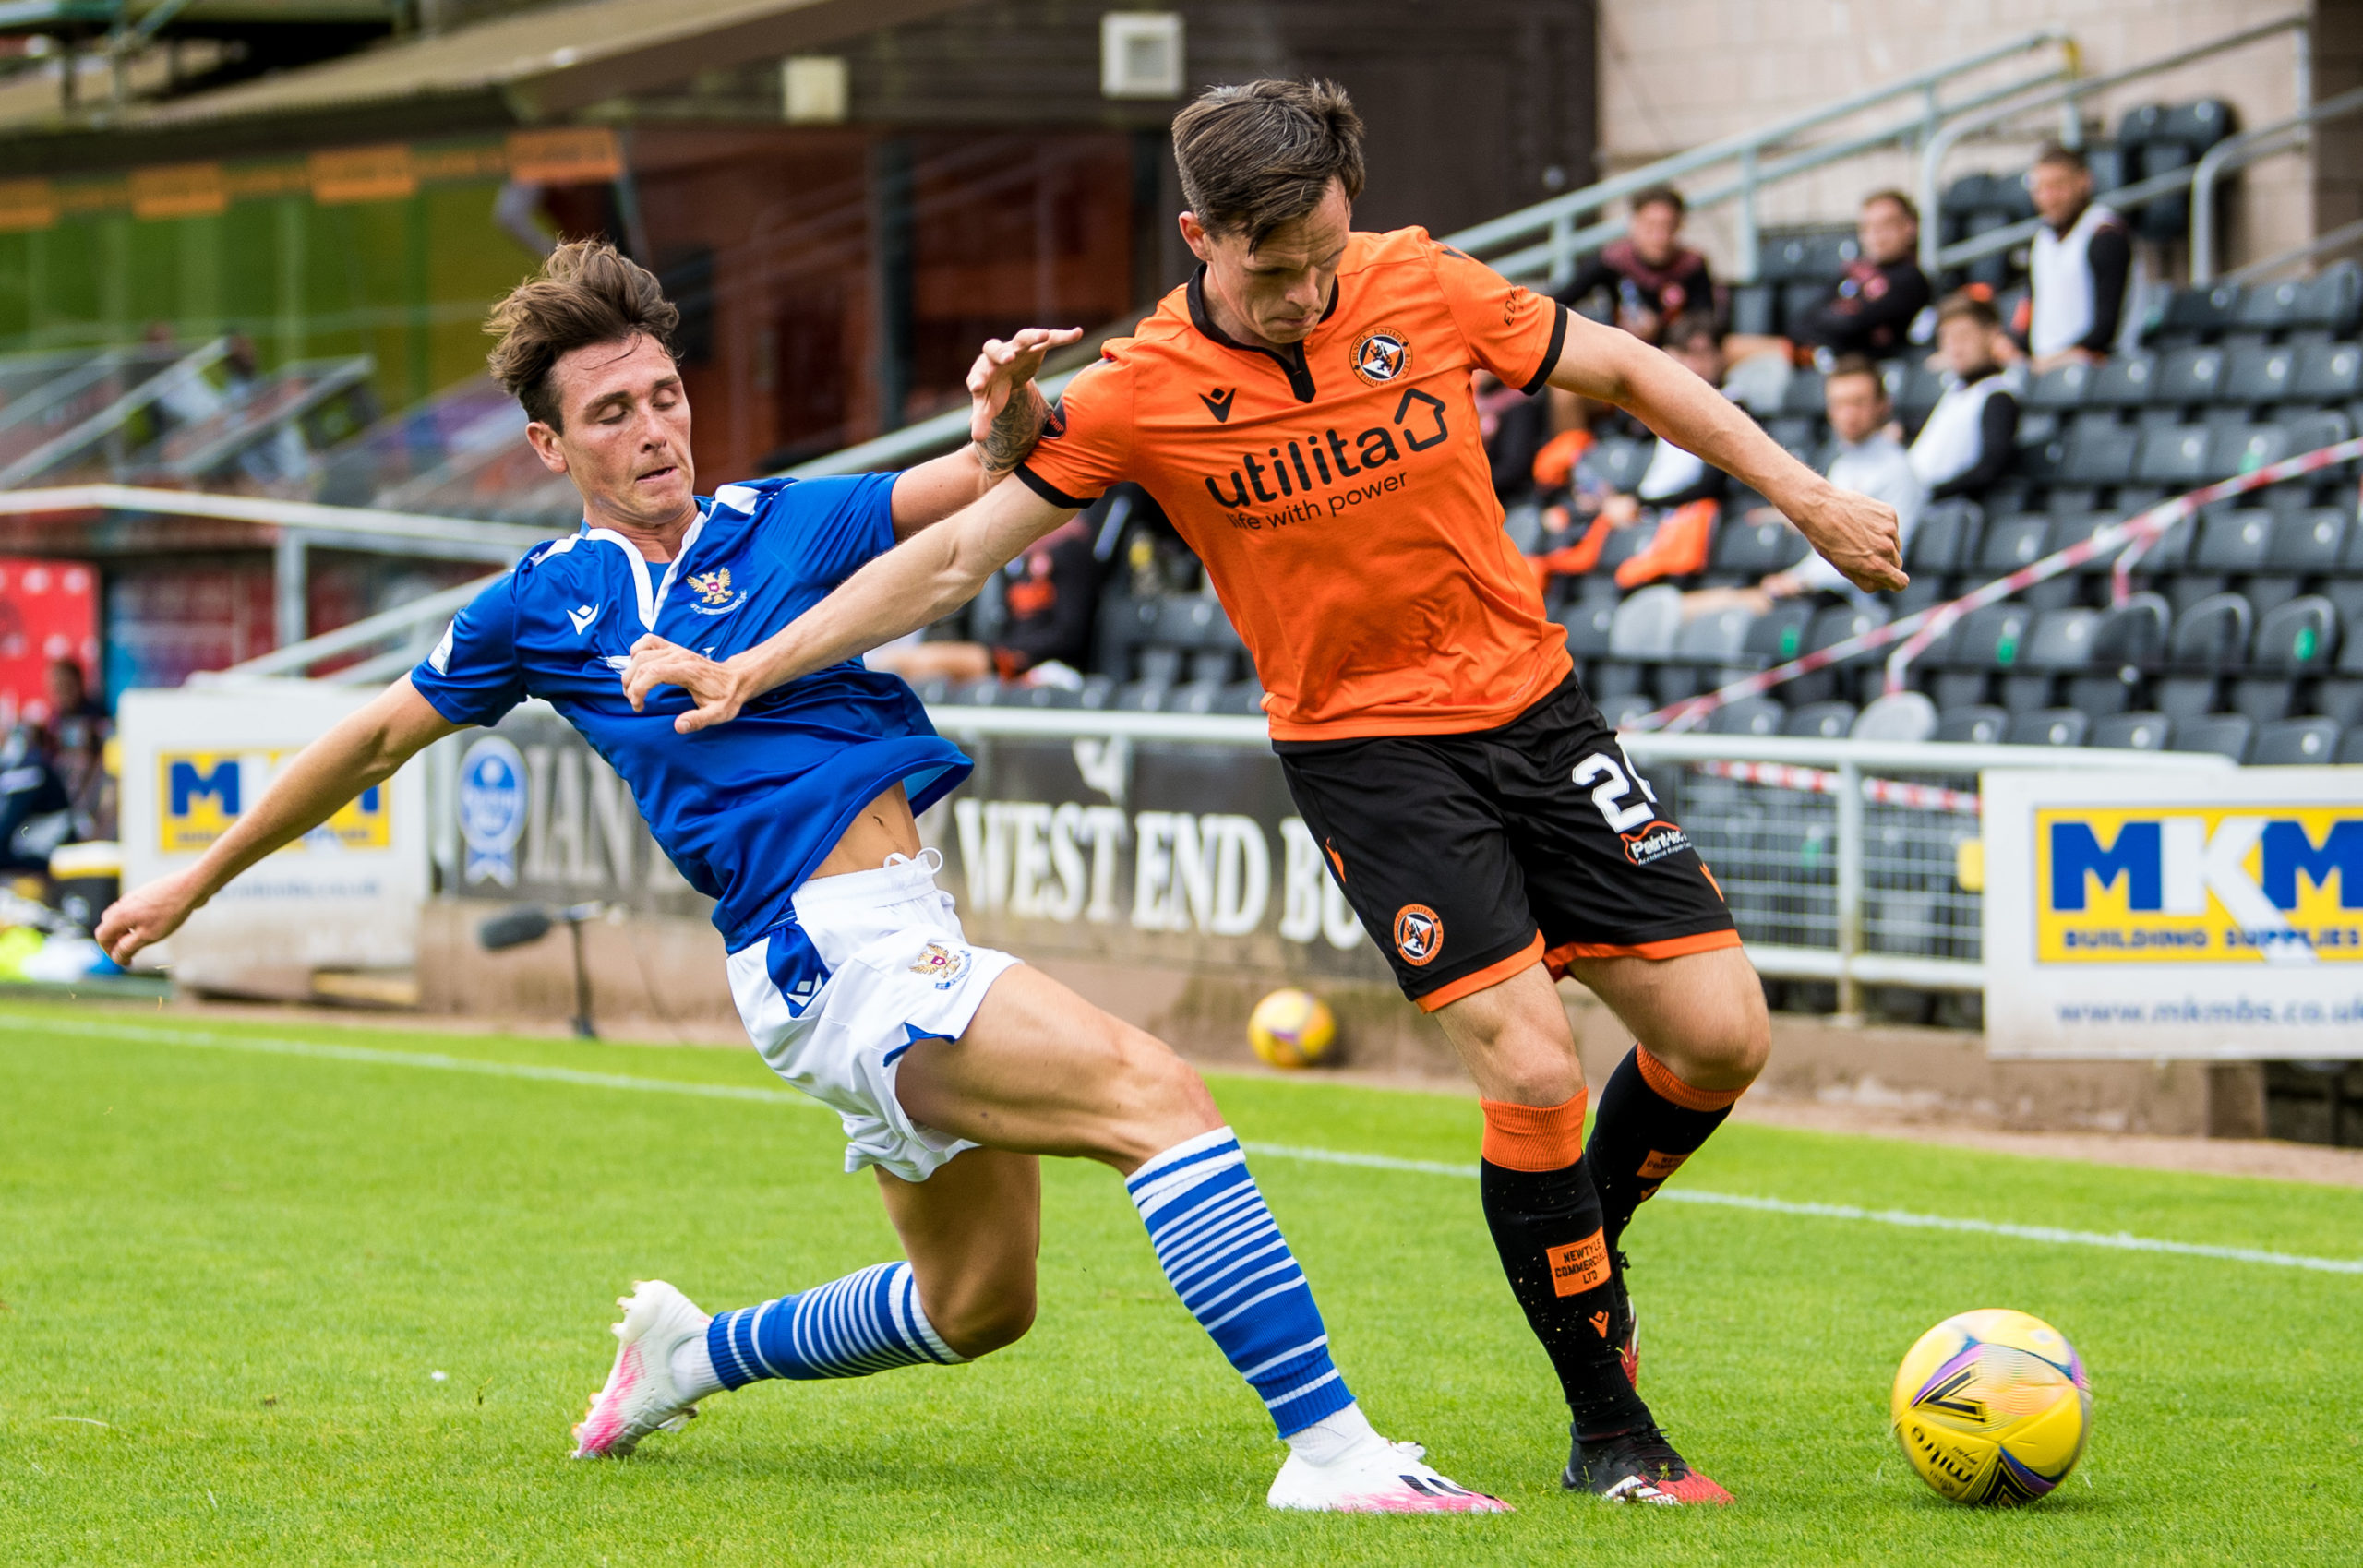 Shankland on the opening day of the season against St Johnstone.